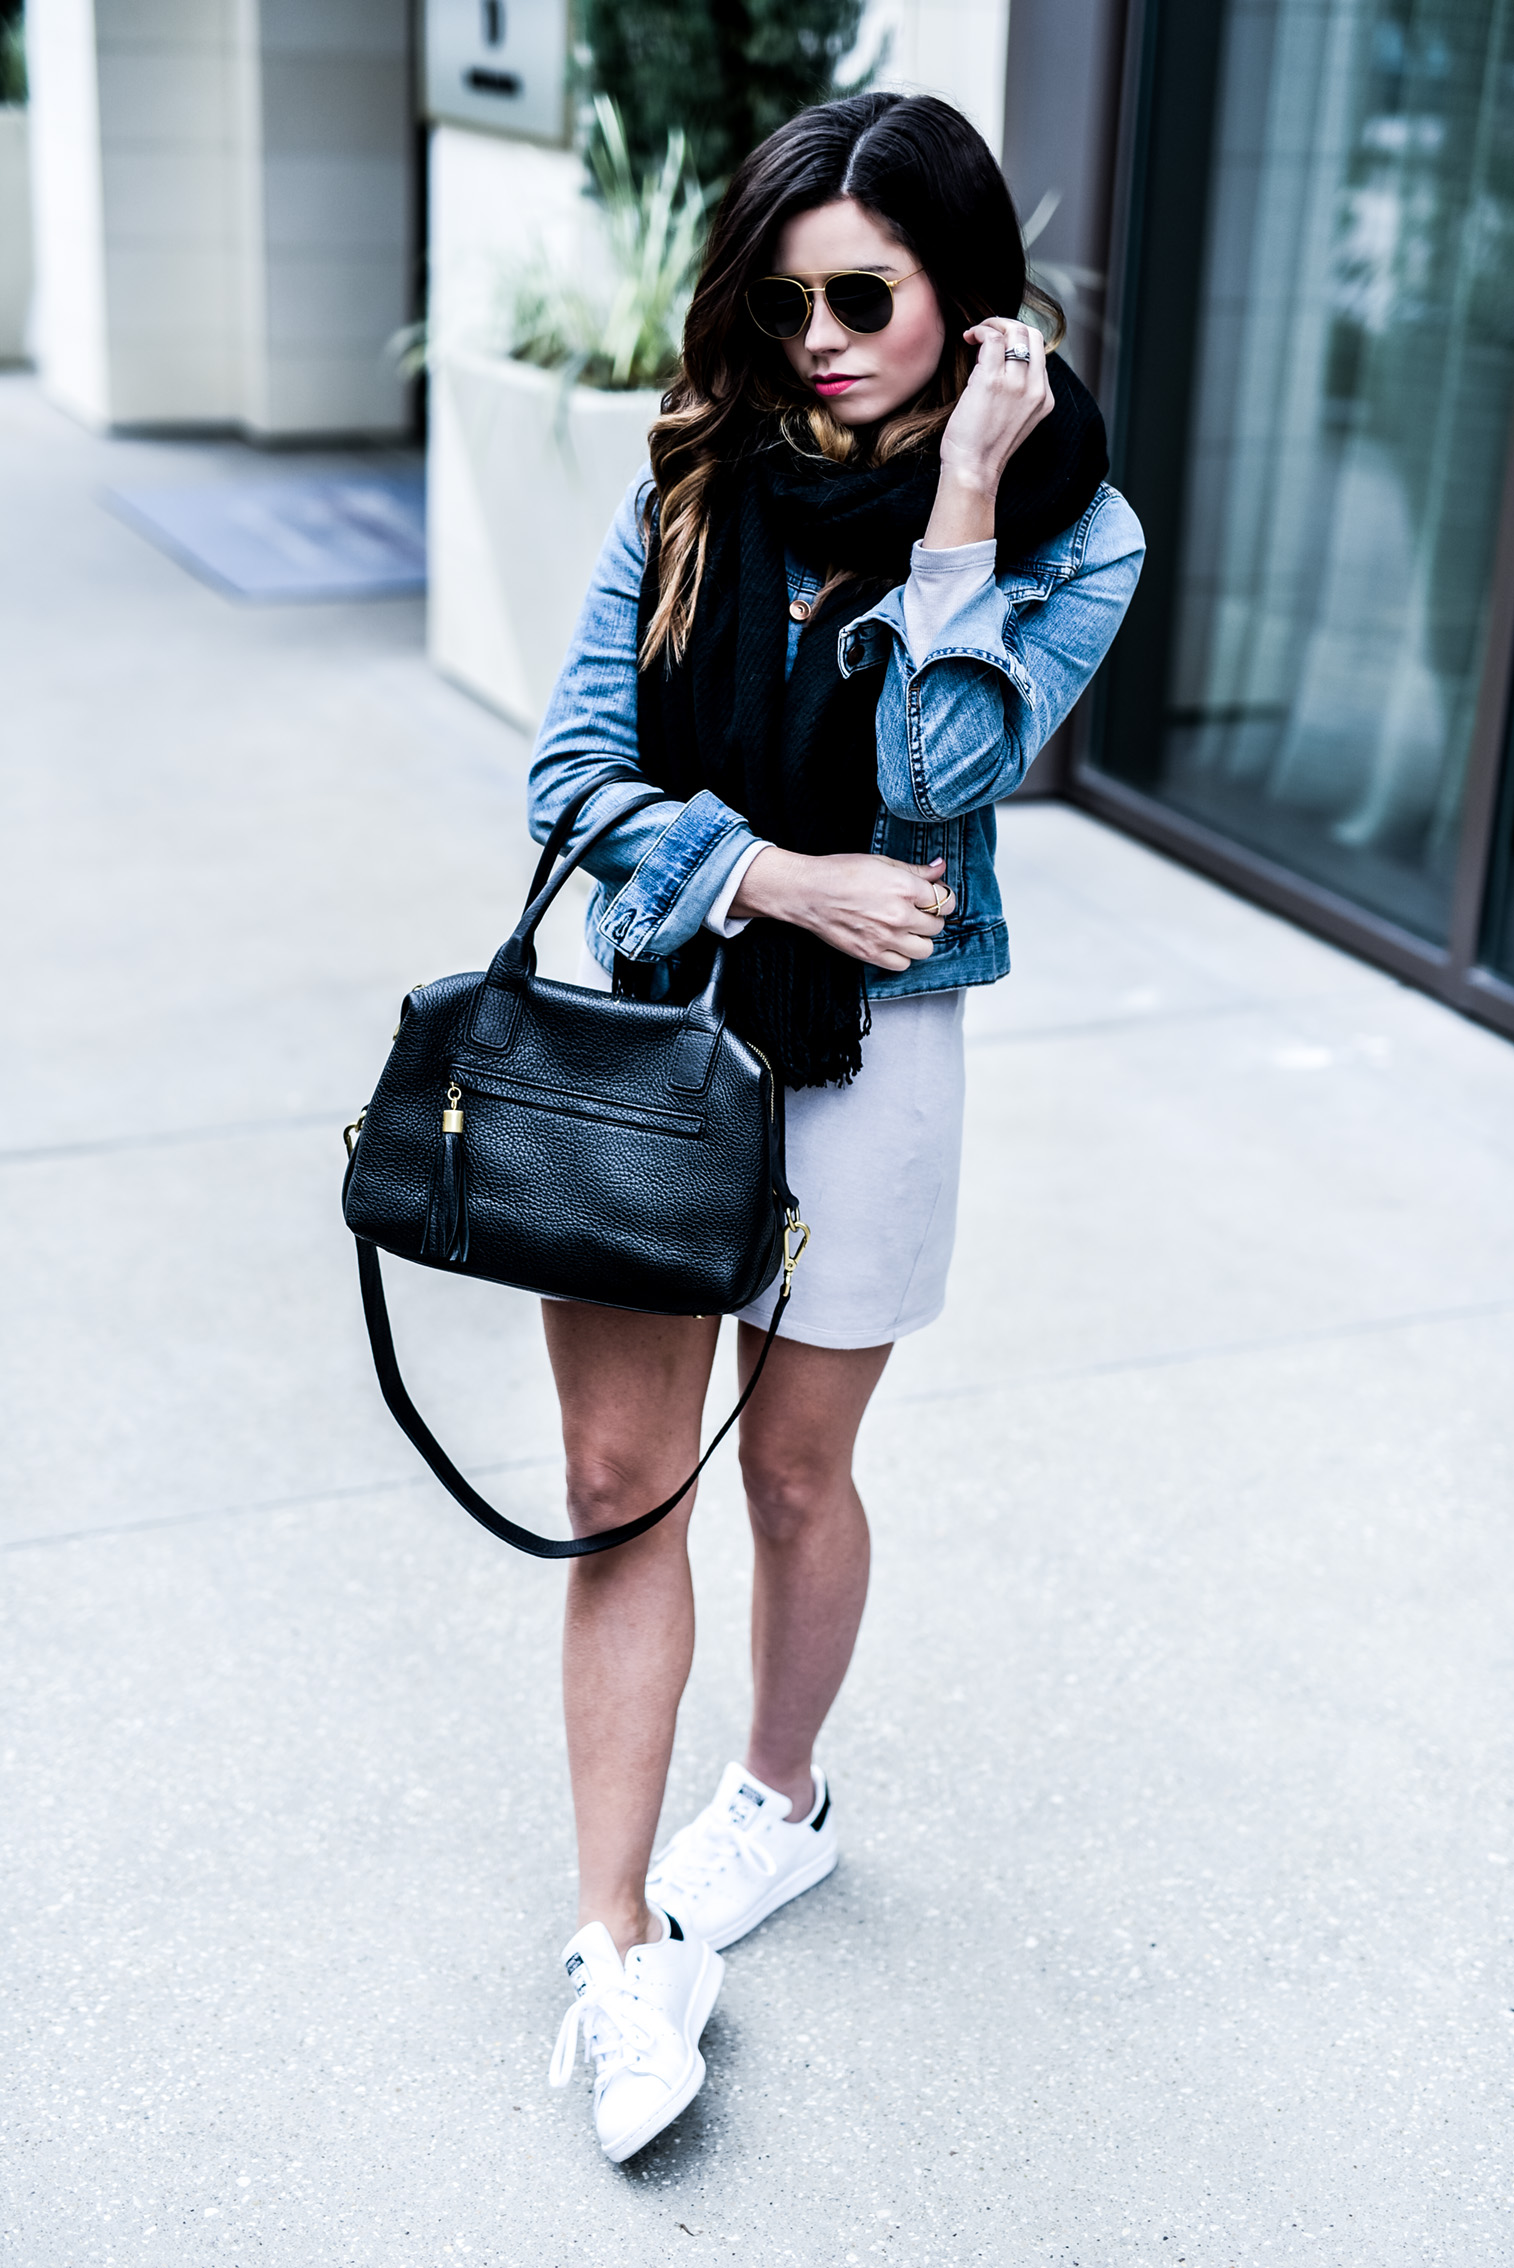 Adding layers | Tiffany Jais Houston fashion and lifestyle blogger of Flaunt and Center wearing a grey Revolve dress and a denim jacket by Madewell